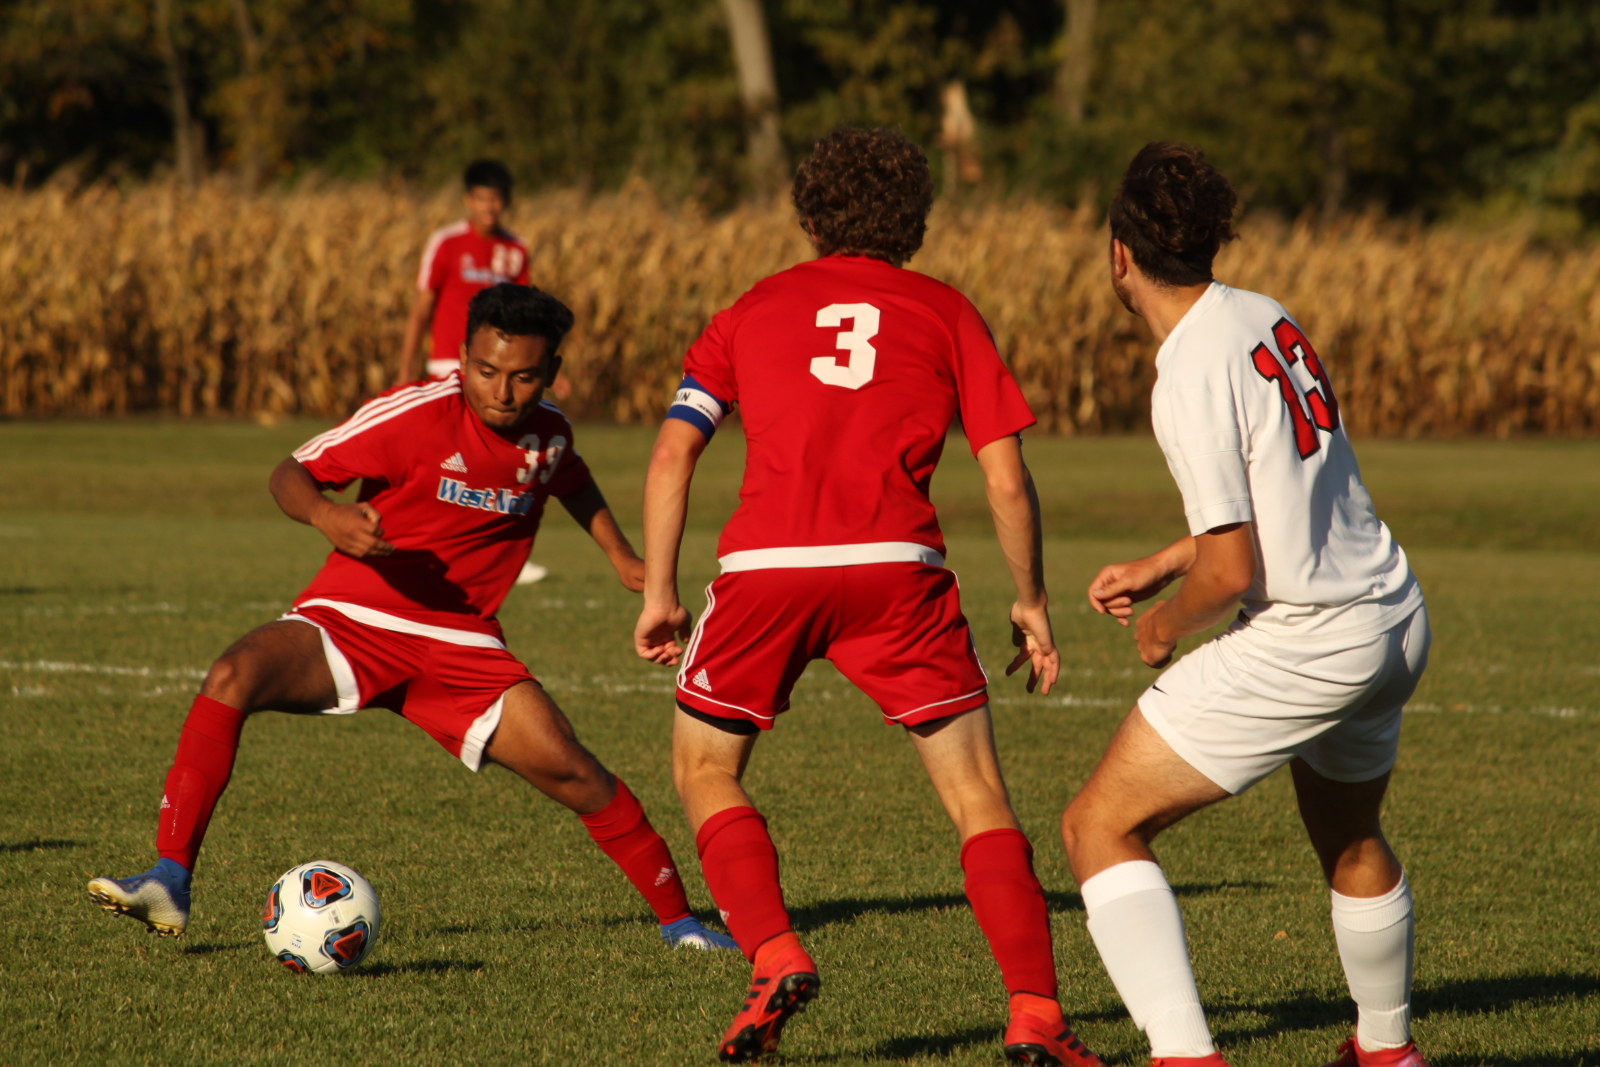 West Noble Boys Soccer Vs. Northwood High School(Shaw Photography)